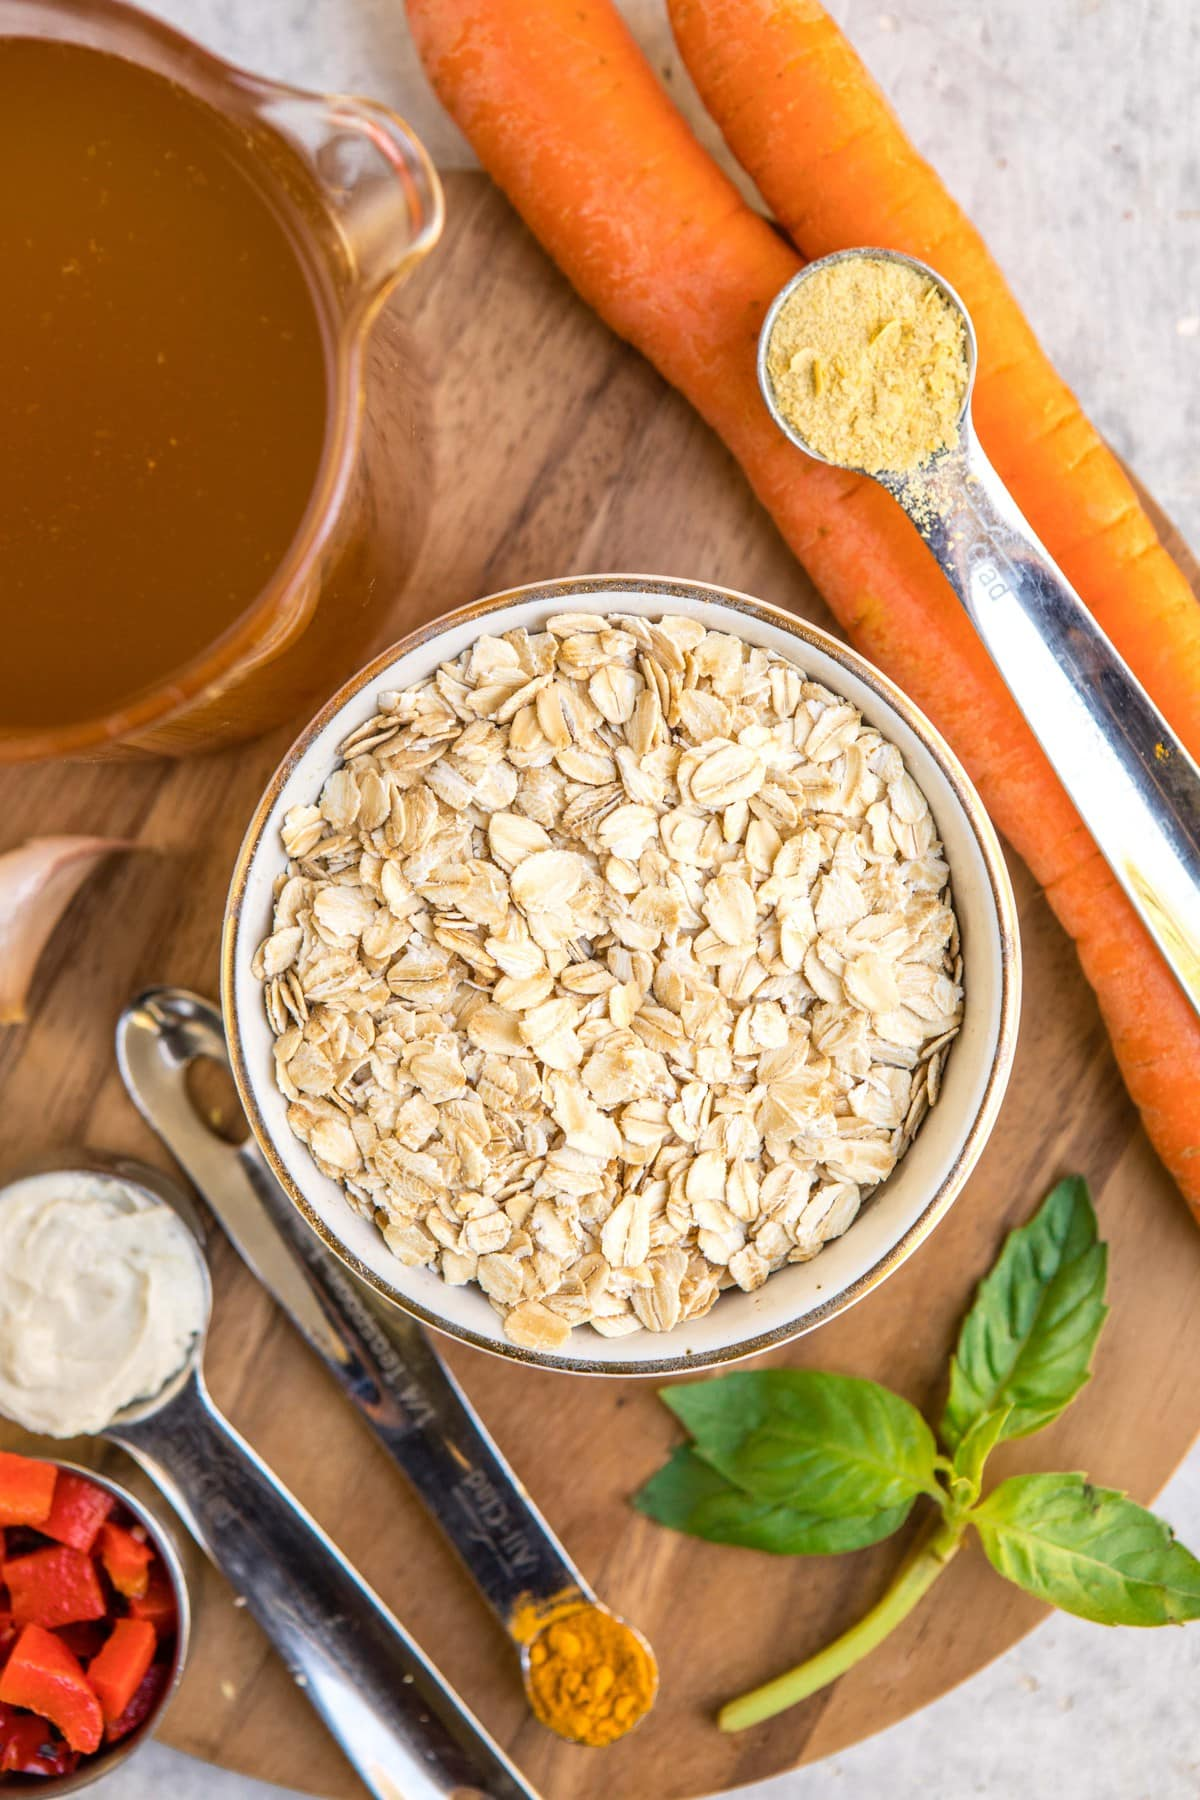 ingredients for savory oatmeal laid out on wood cutting board